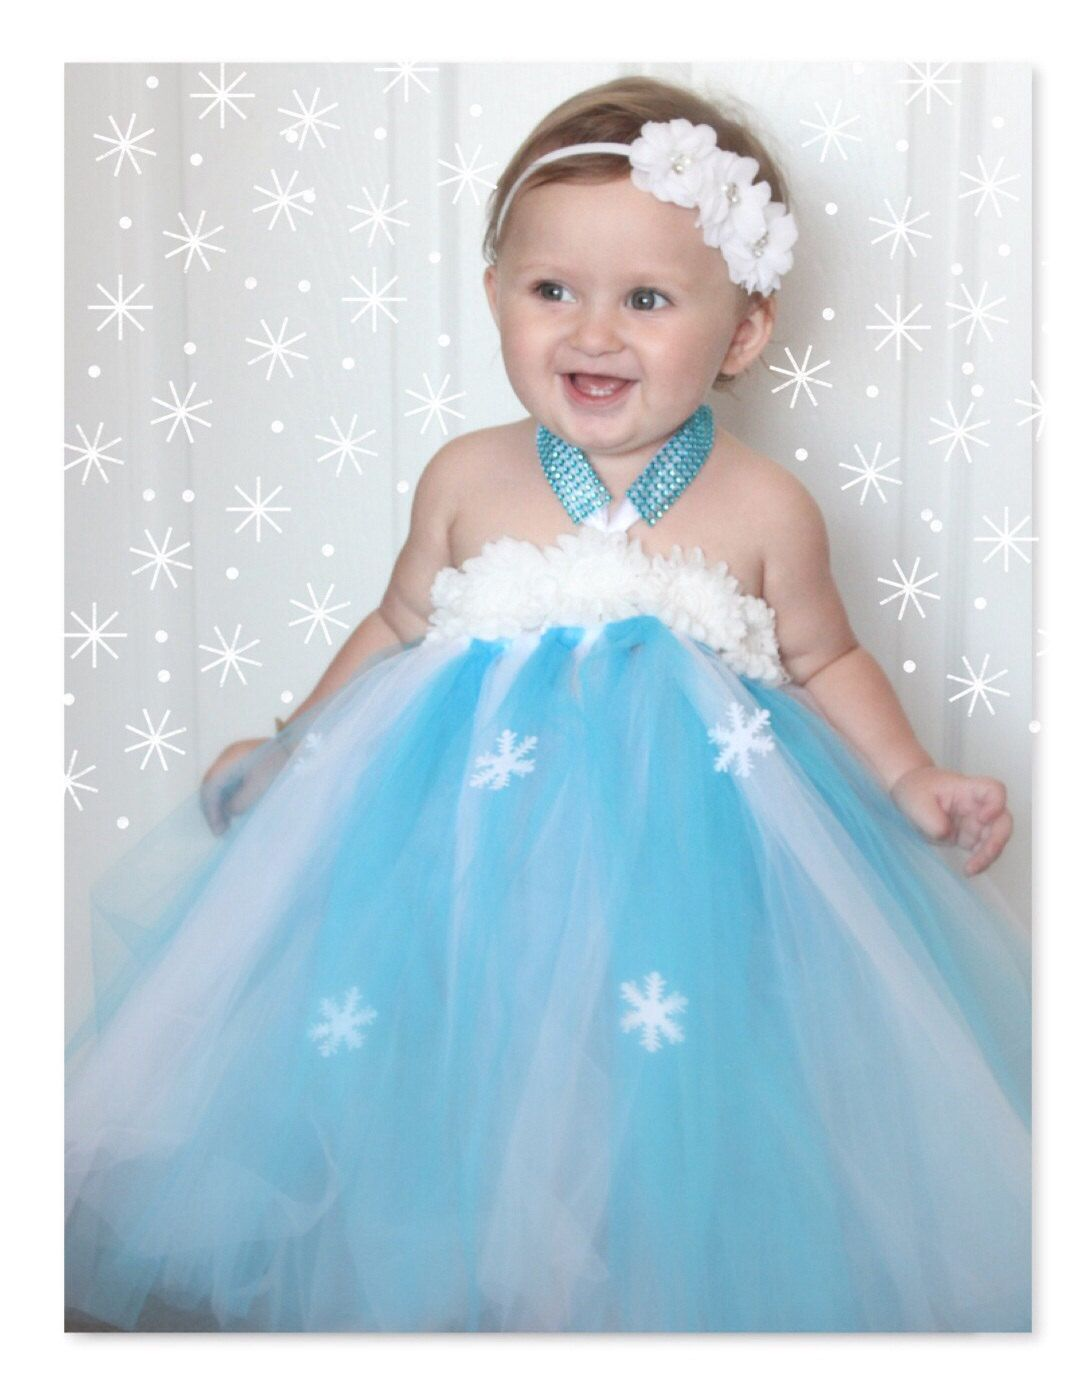 f4c9b7d1564e Frozen+Inspired+Snowflake+Tutu+Dress+for+Baby+by+AverysCoutureLook ...